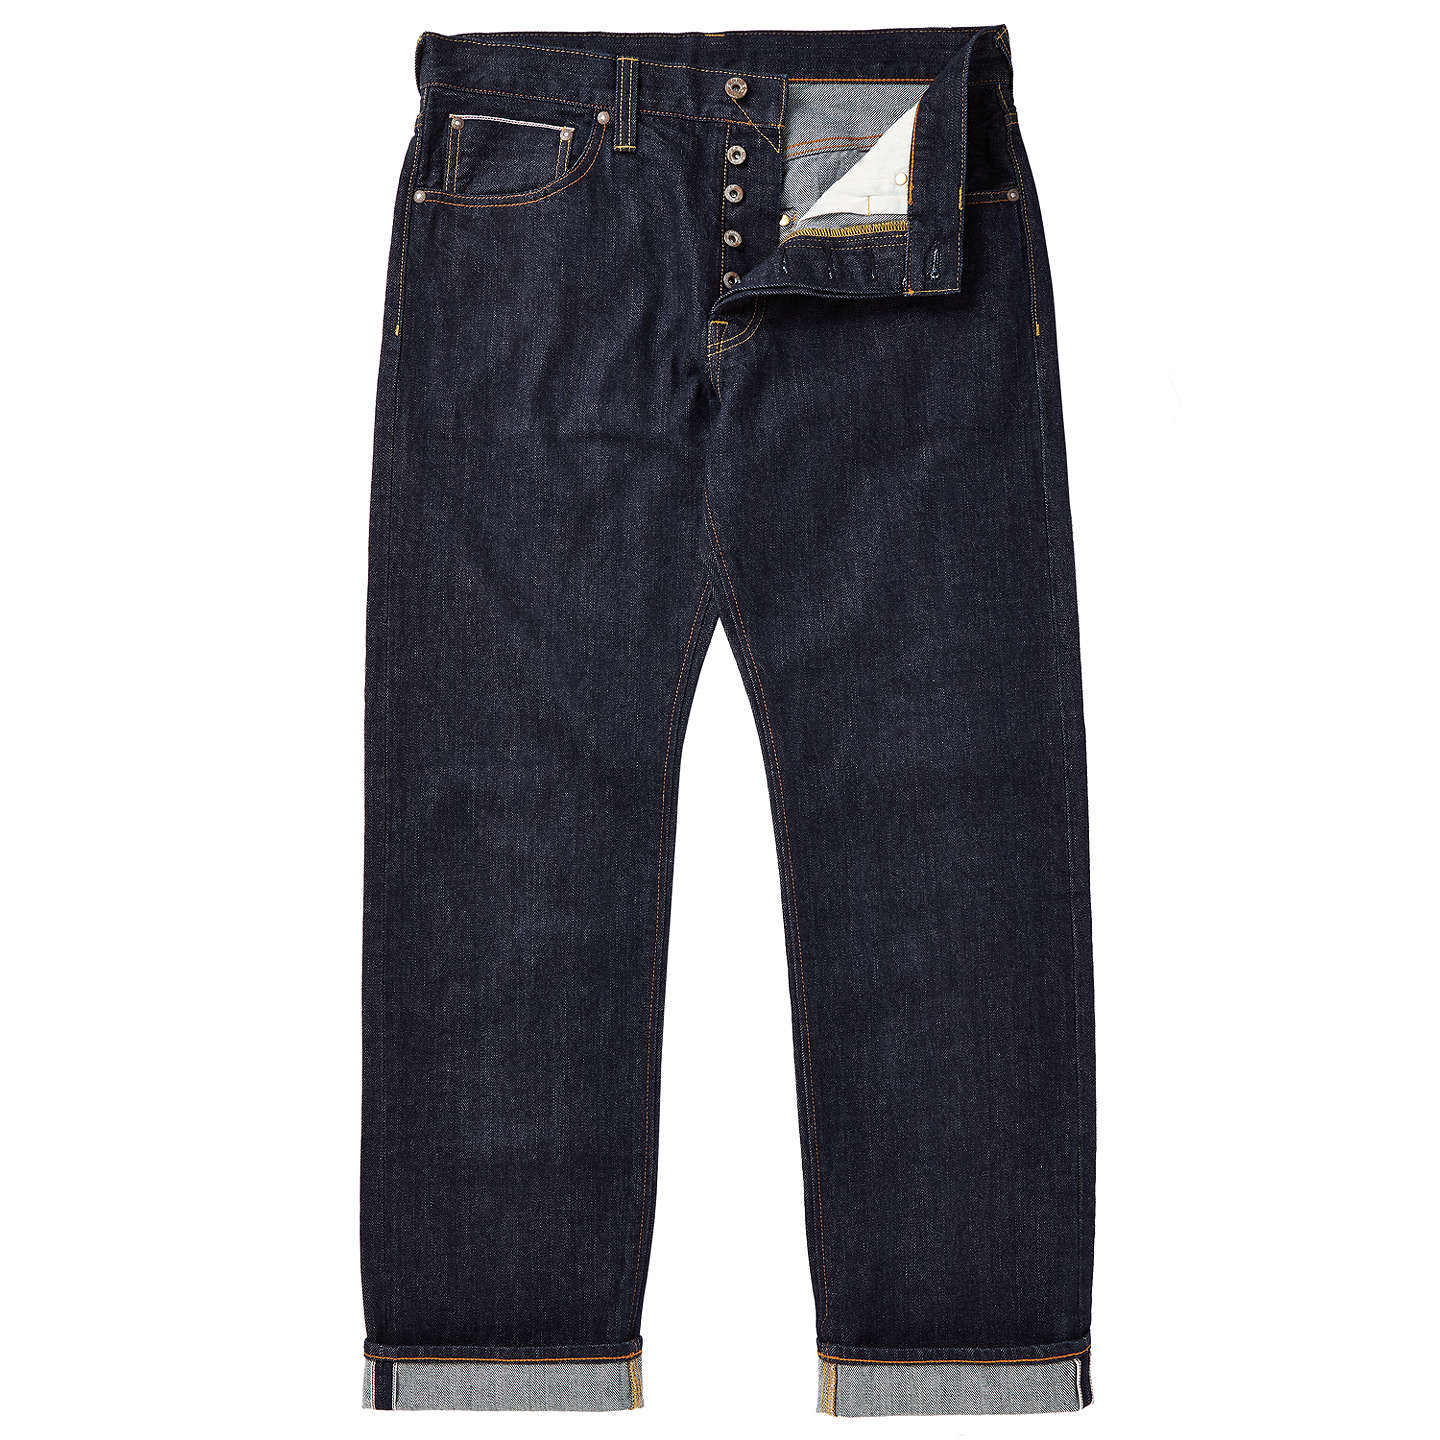 BuyJOHN LEWIS & Co. Washed Japanese Selvedge Denim Jeans, Blue, 30R Online at johnlewis.com